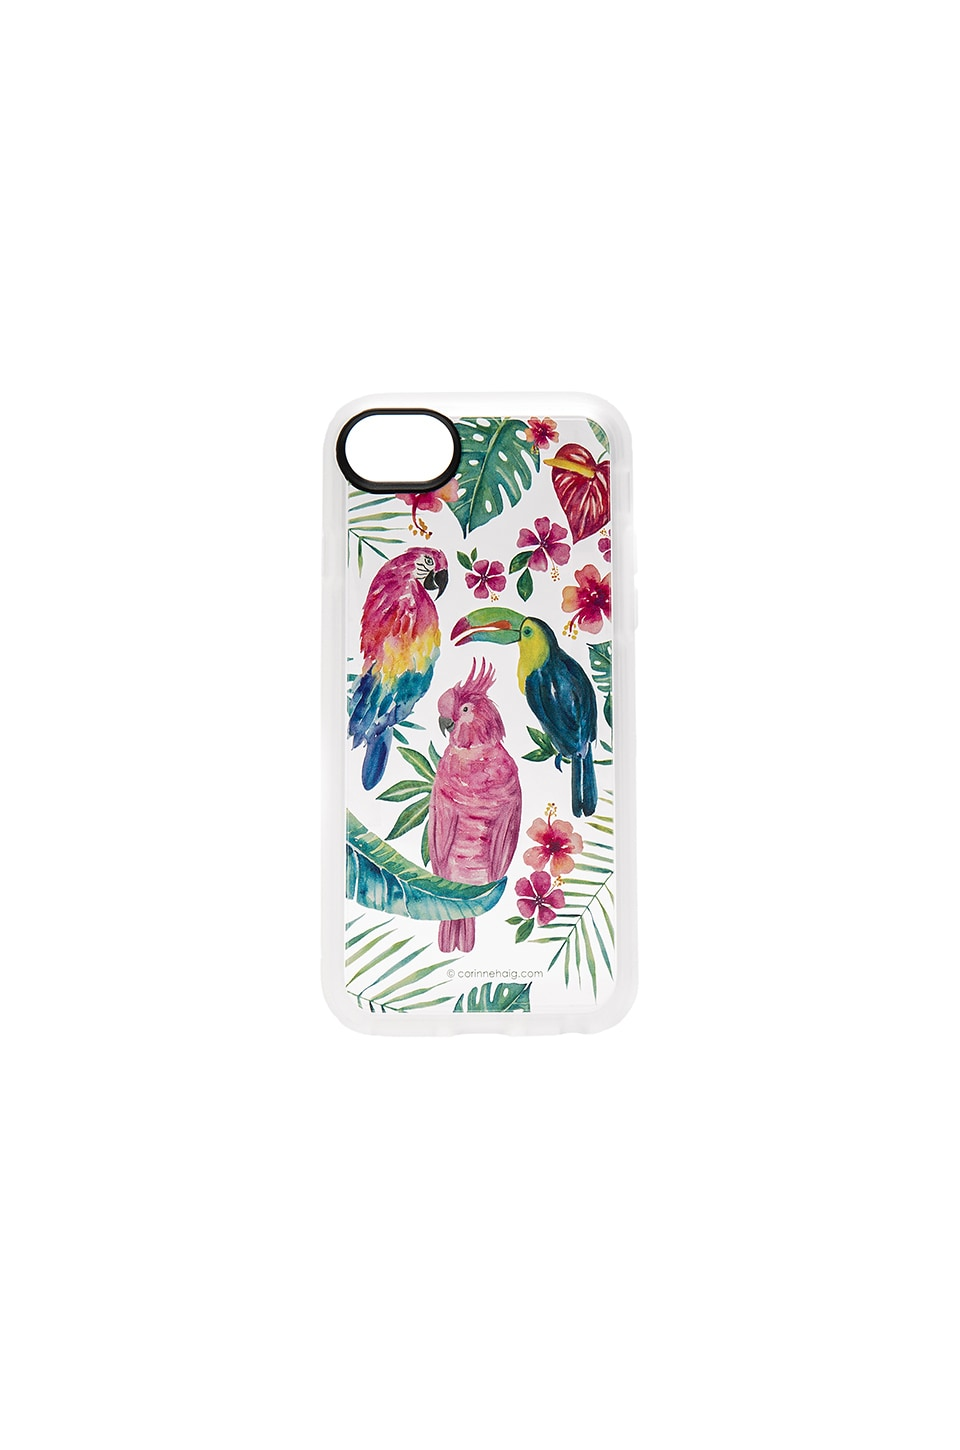 Tropical Birds iPhone 7 Case by Casetify